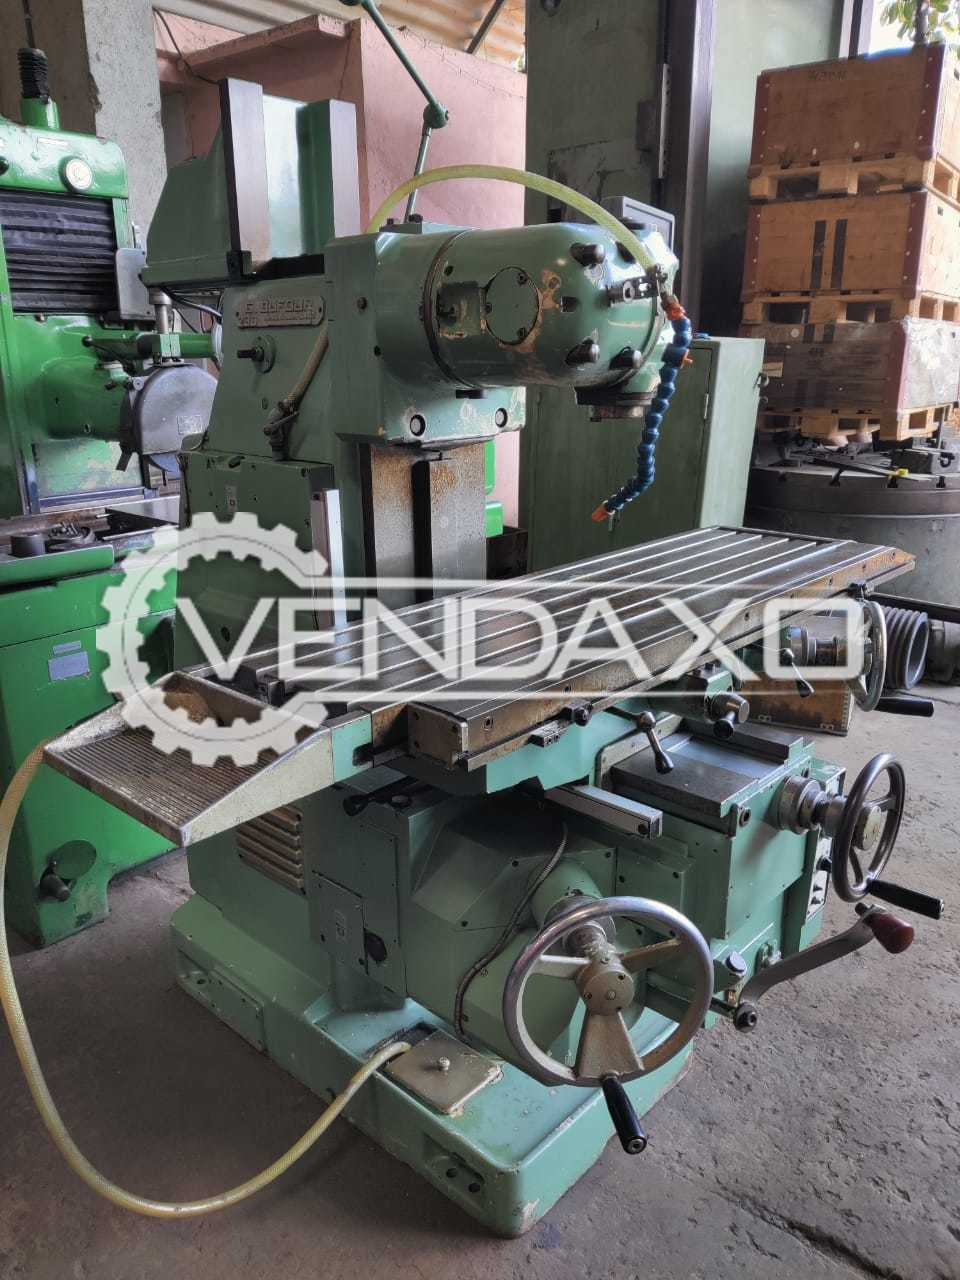 Dufour 230 Milling Machine - Table Size - 1300 x 325 mm